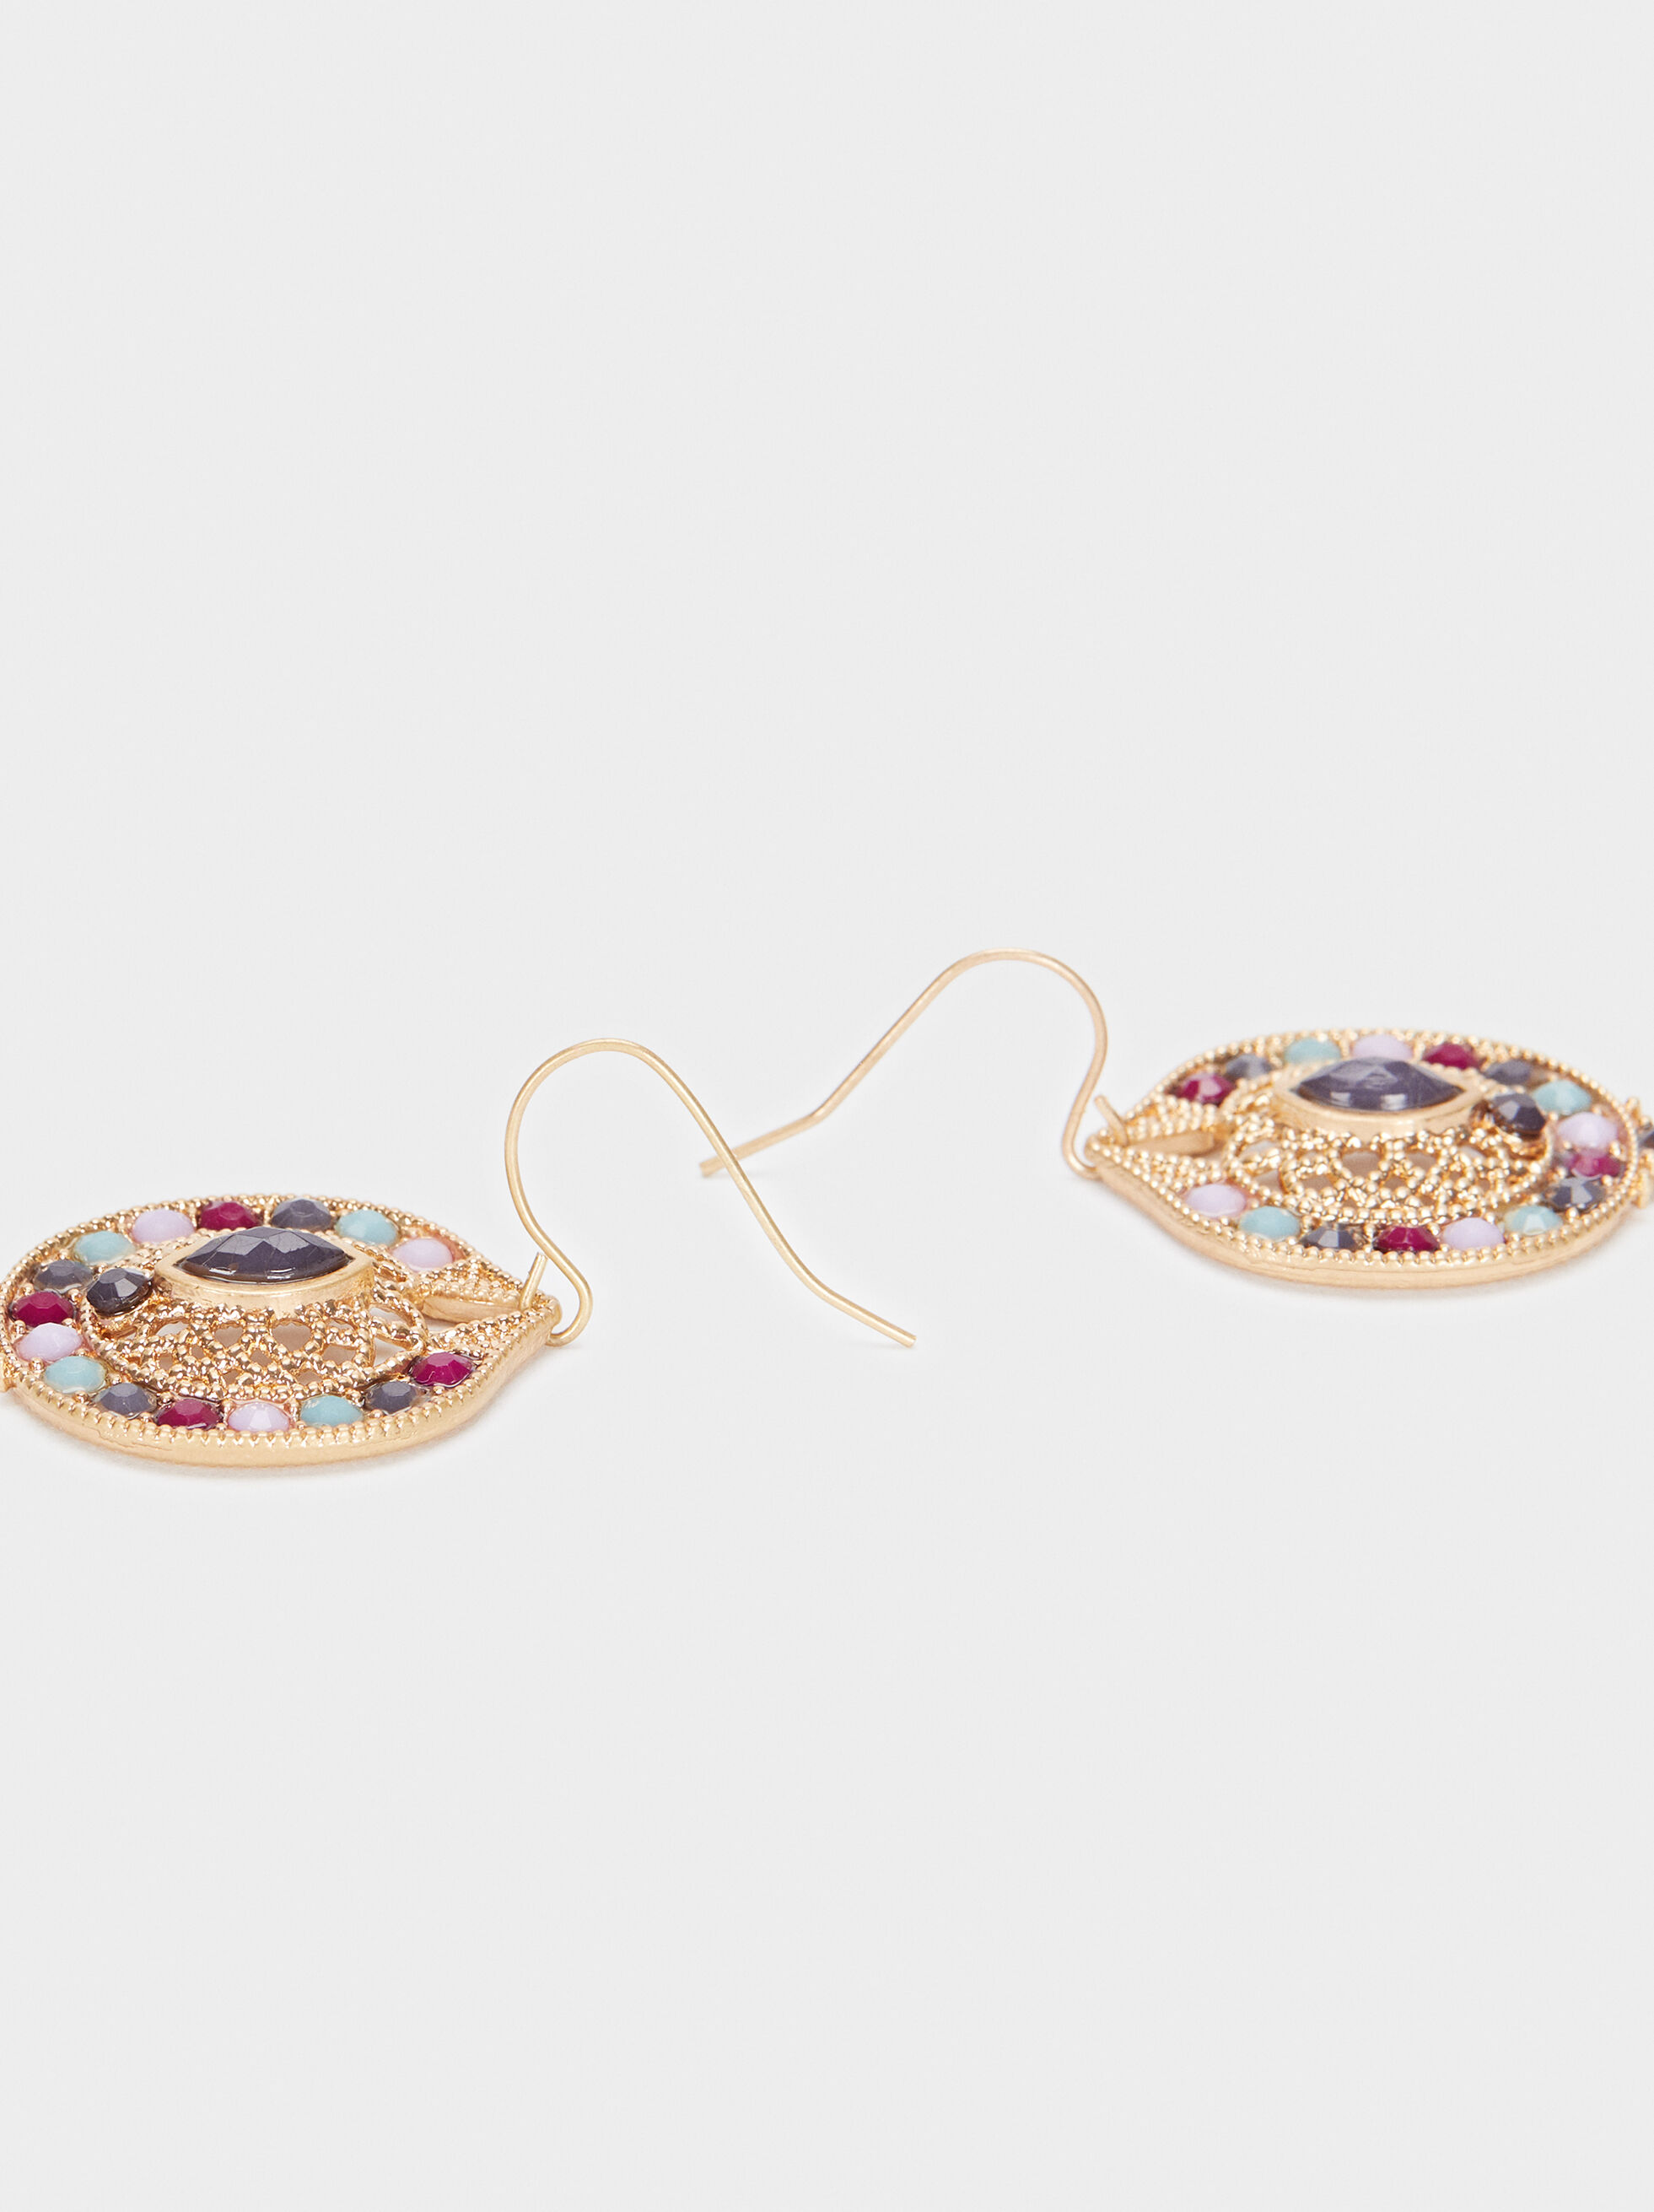 Watercolor Medium Earrings With Beads, Multicolor, hi-res